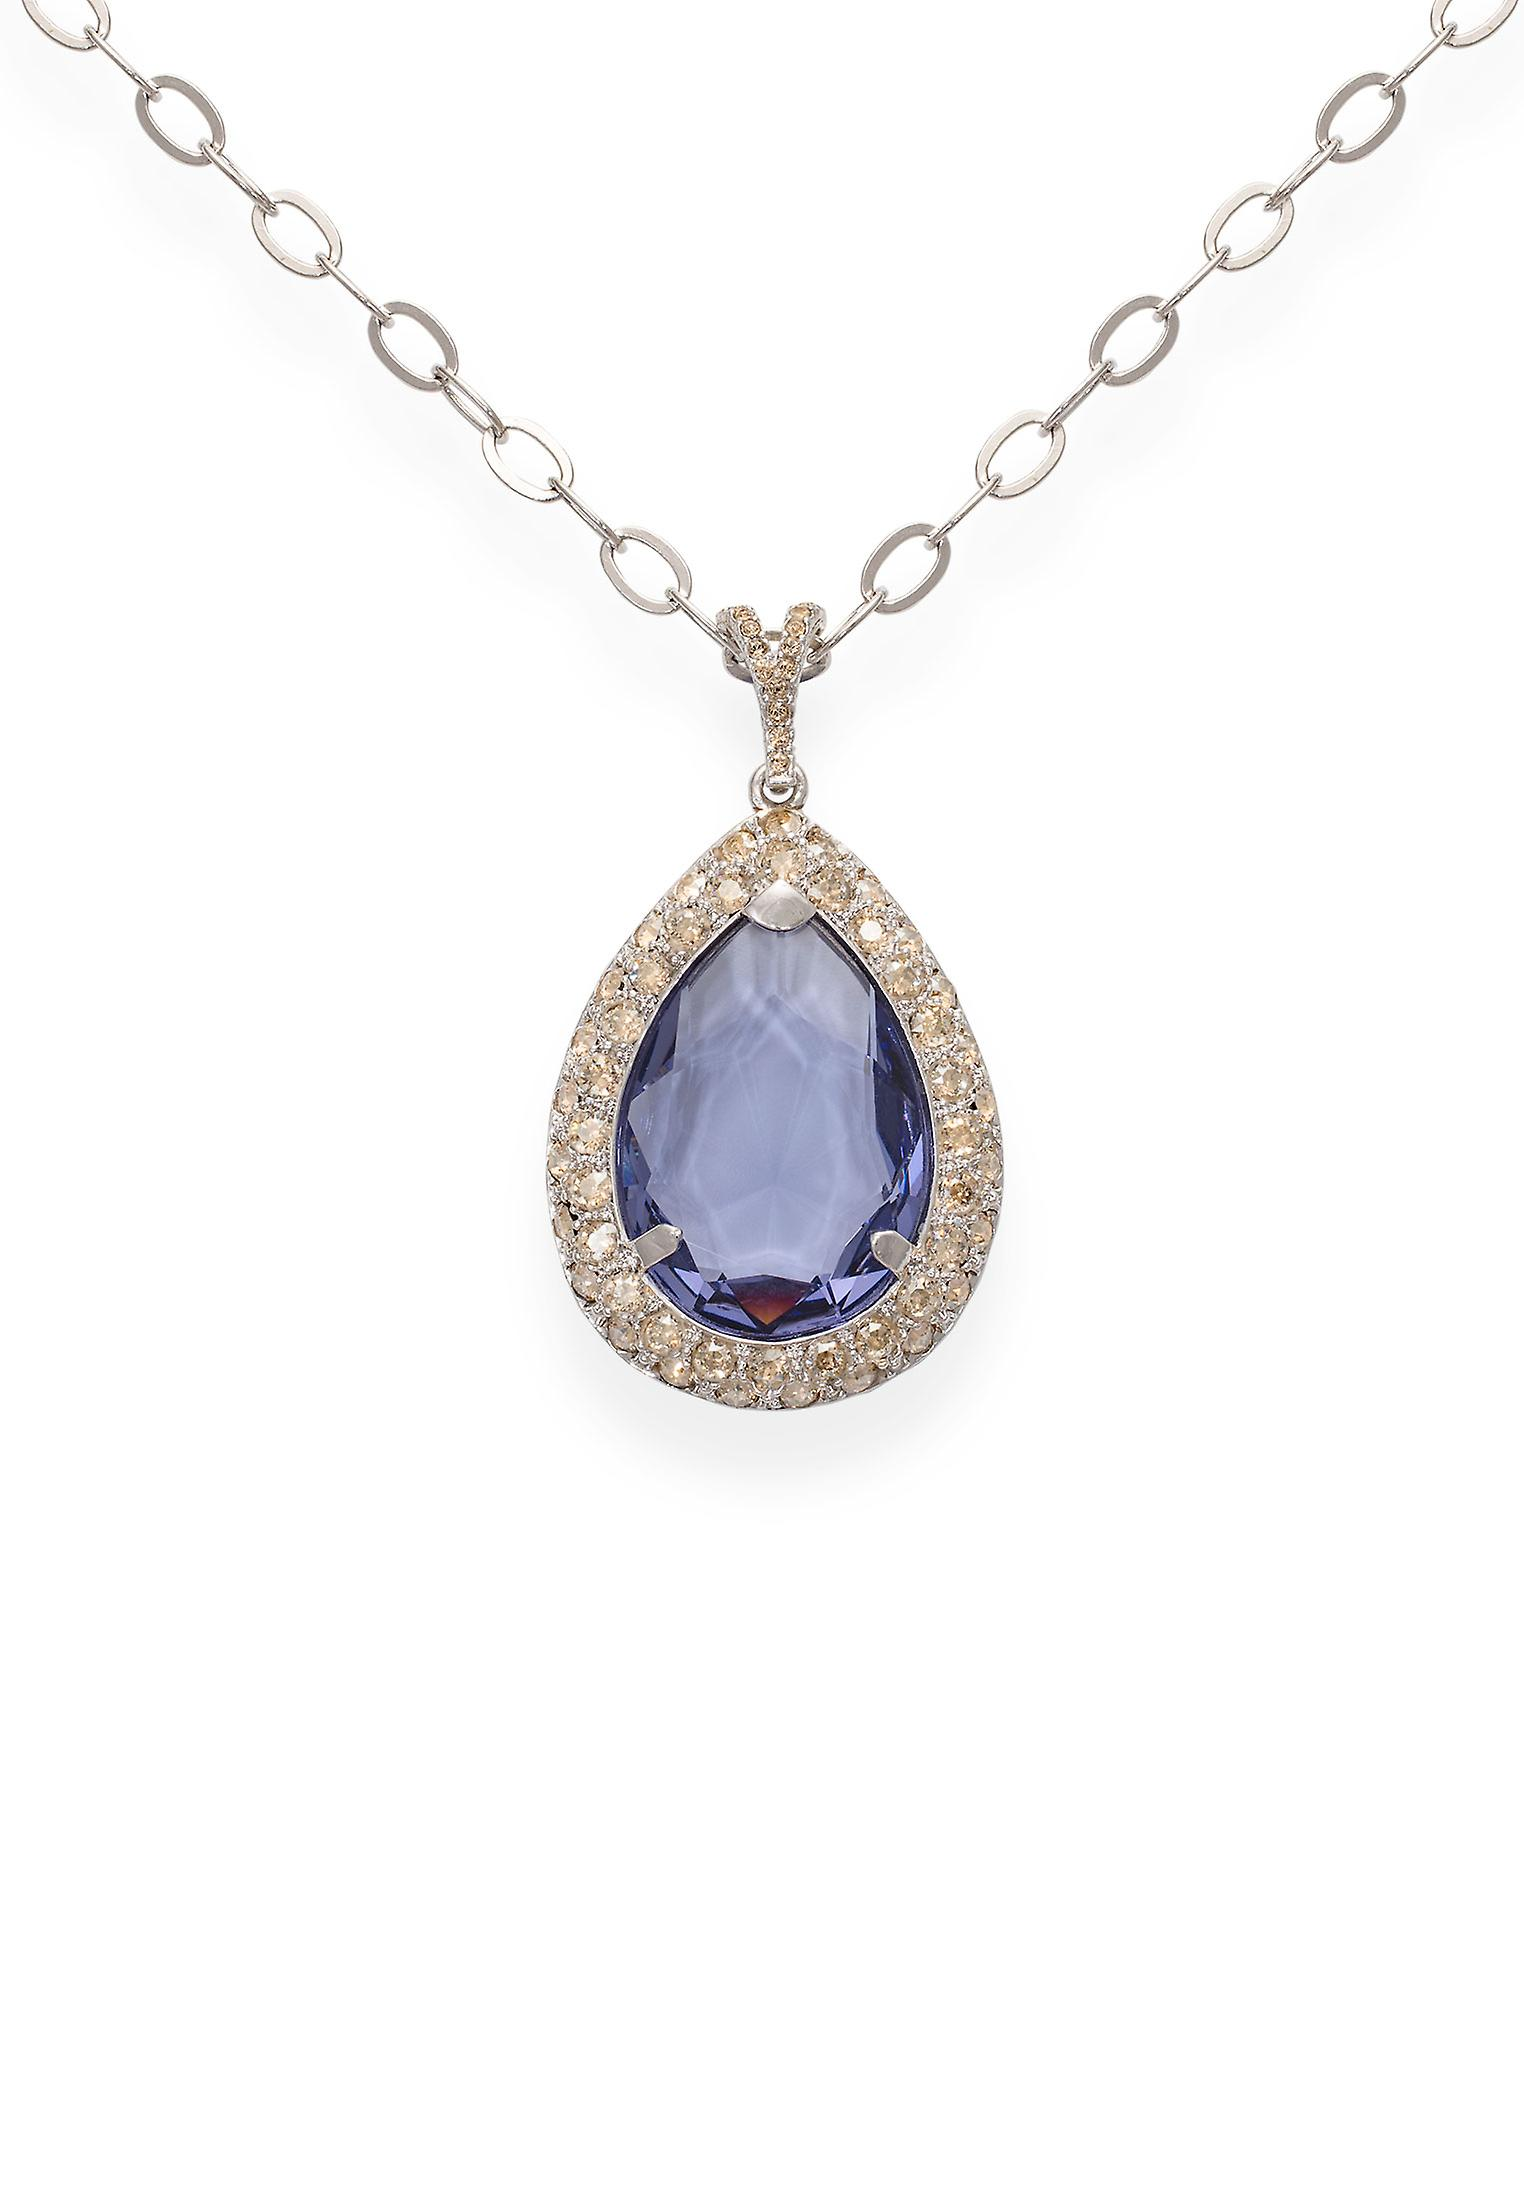 Tanzanite pendant with crystals from Swarovski 9269